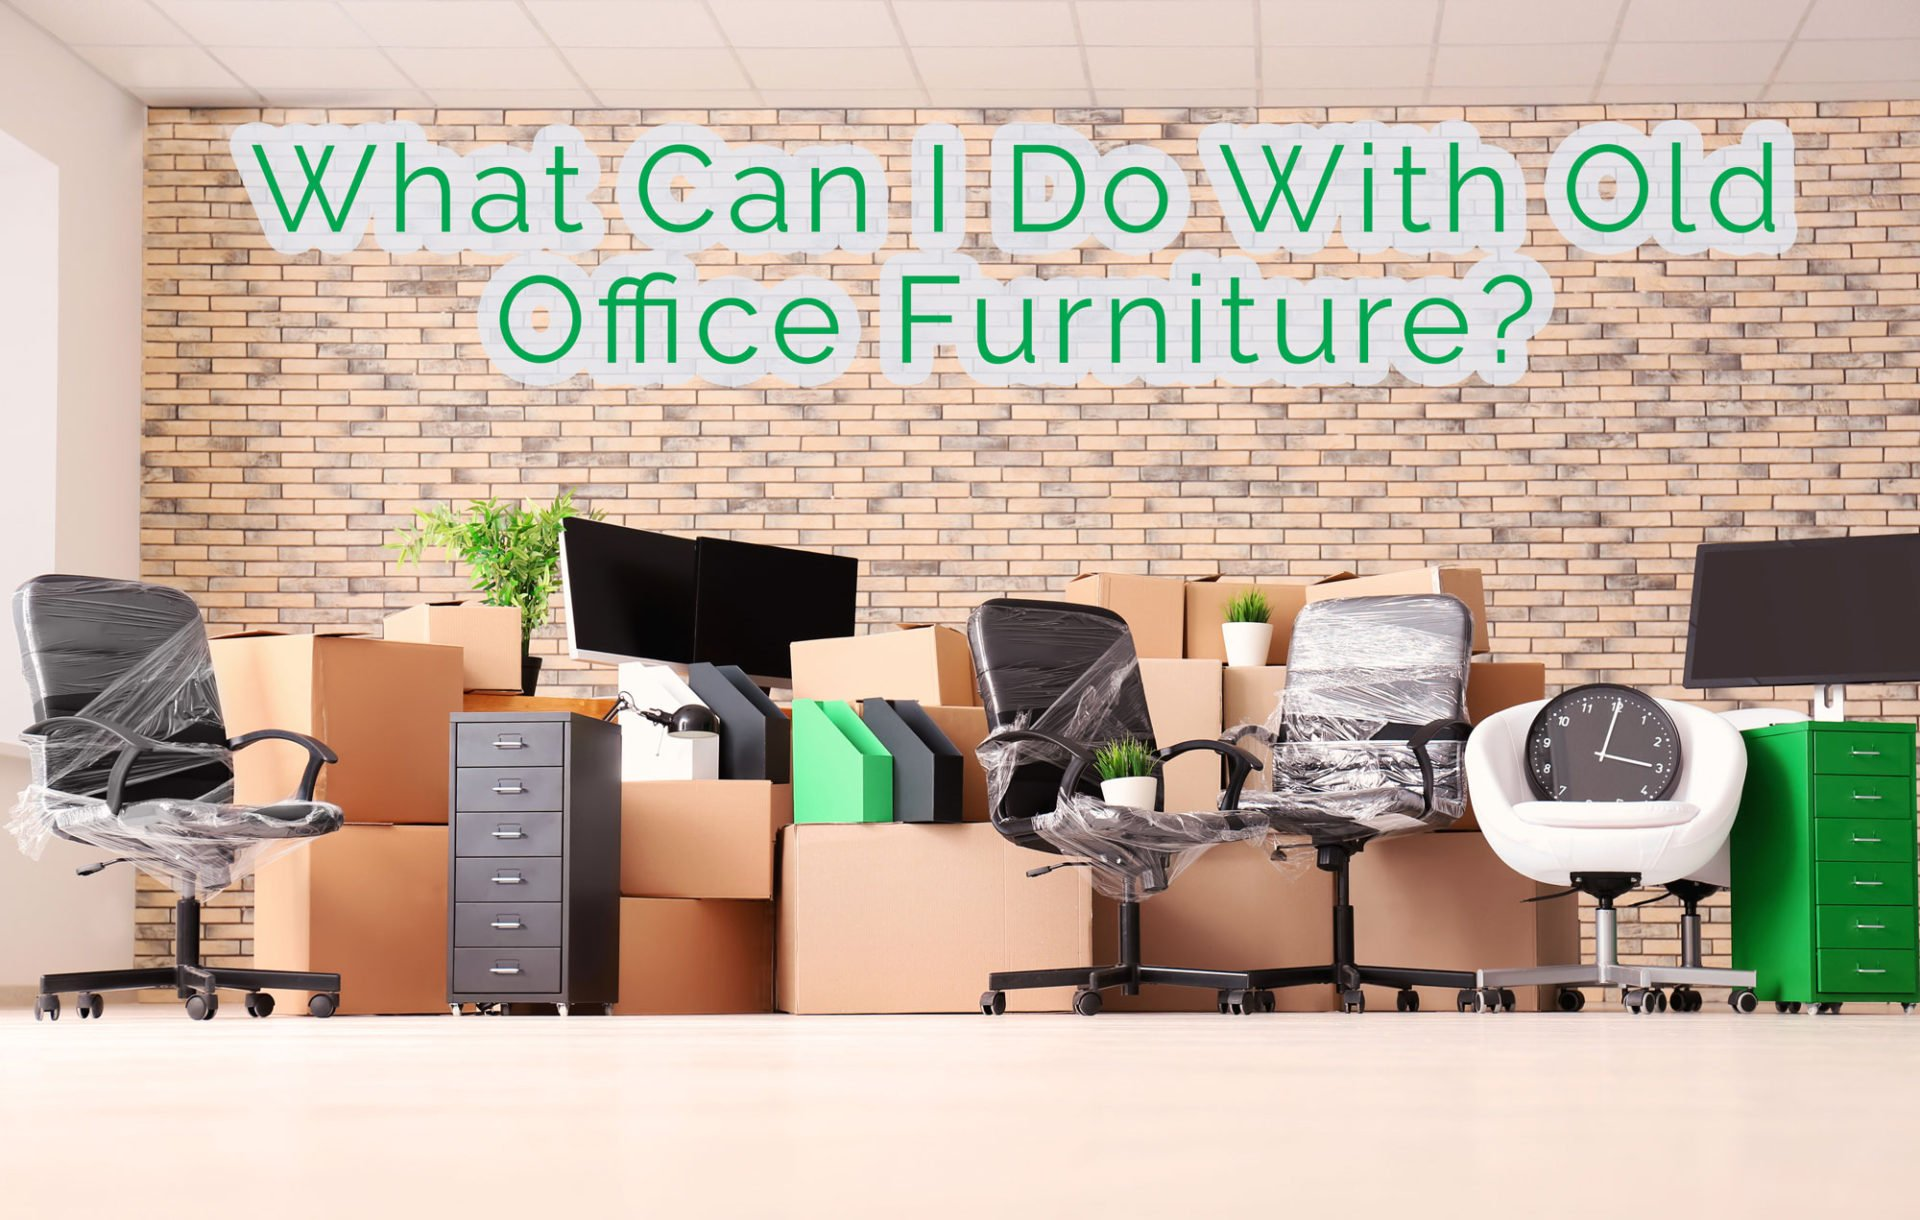 moving boxes and office furniture